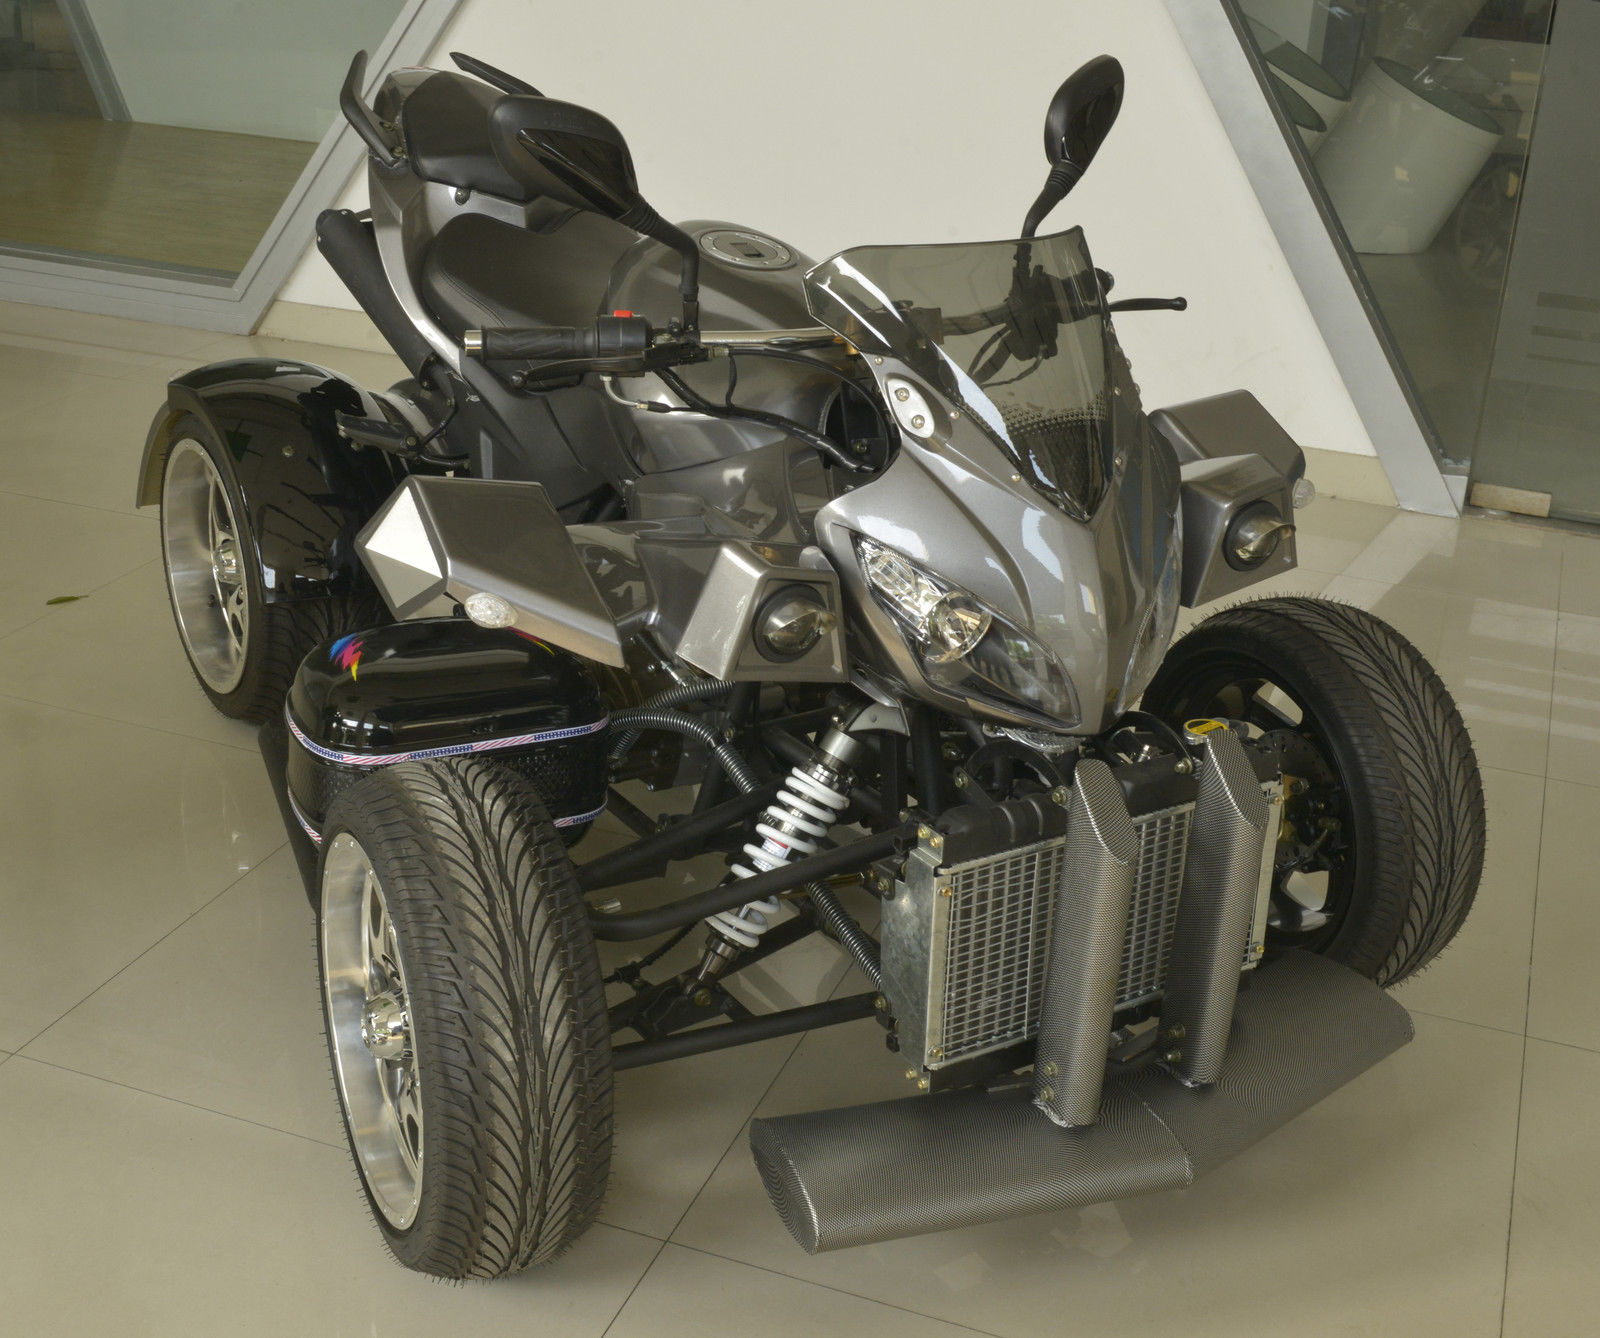 Street Bike Quad: NEW 2014 DCT 250CC SPORT 2 SEATER ROAD LEGAL QUAD BIKE